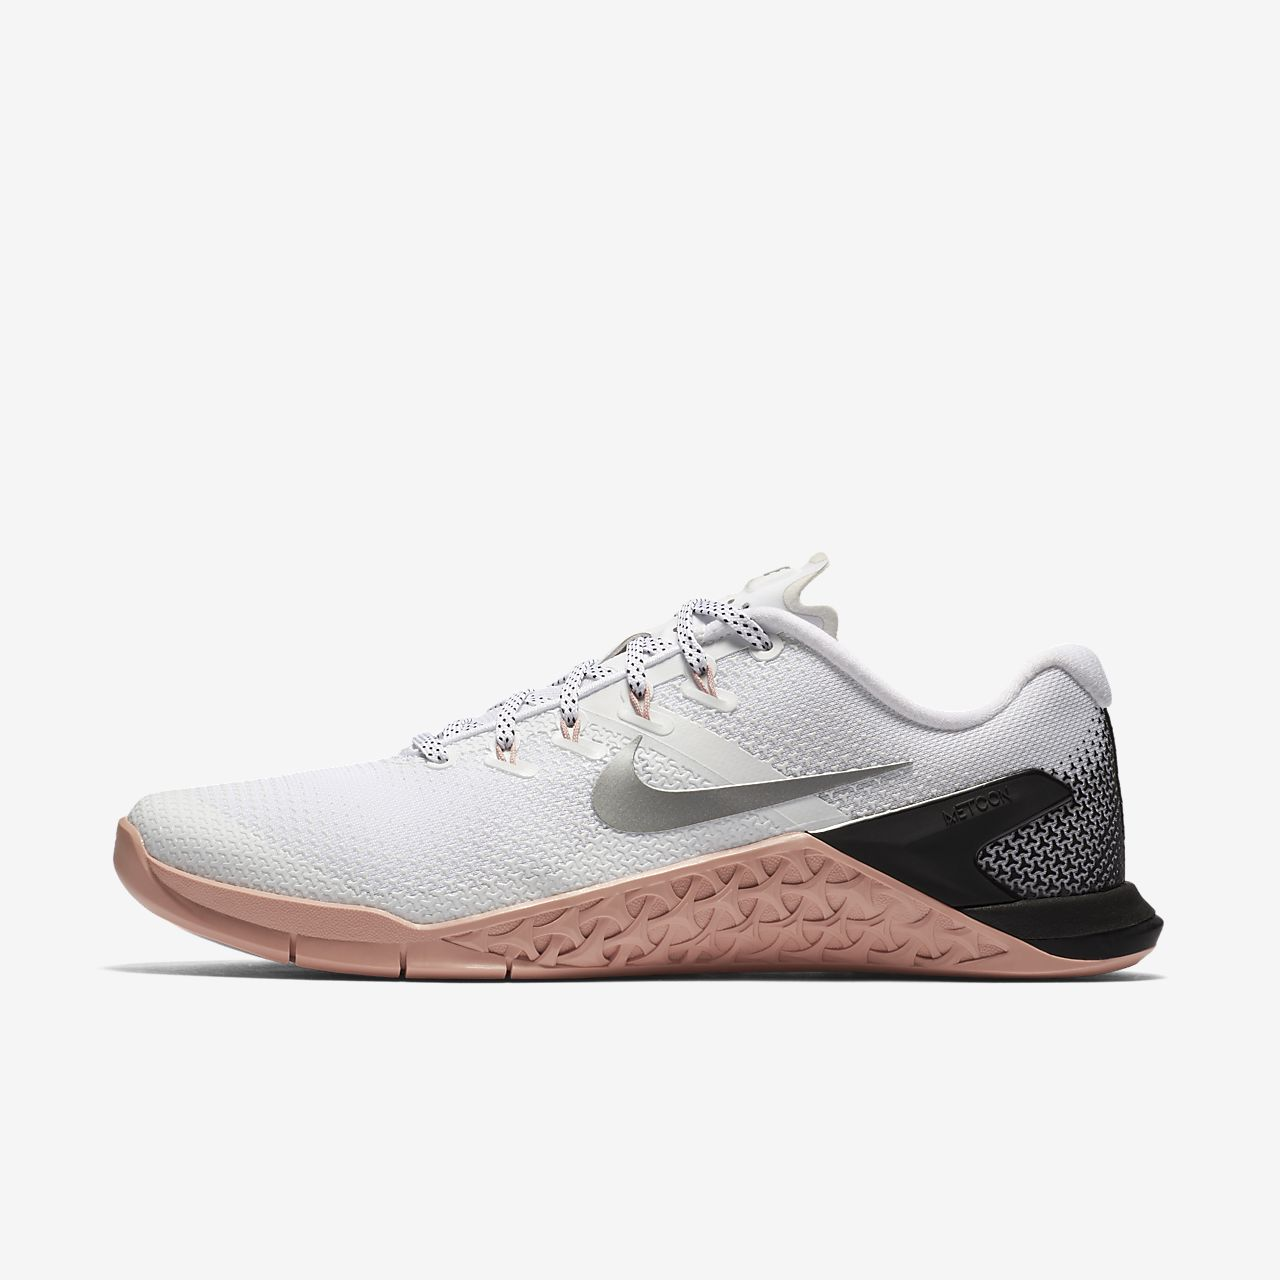 NIKE METCON 4 Women's Cross Training Weightlifting Shoe - White/Rust Pink/Black